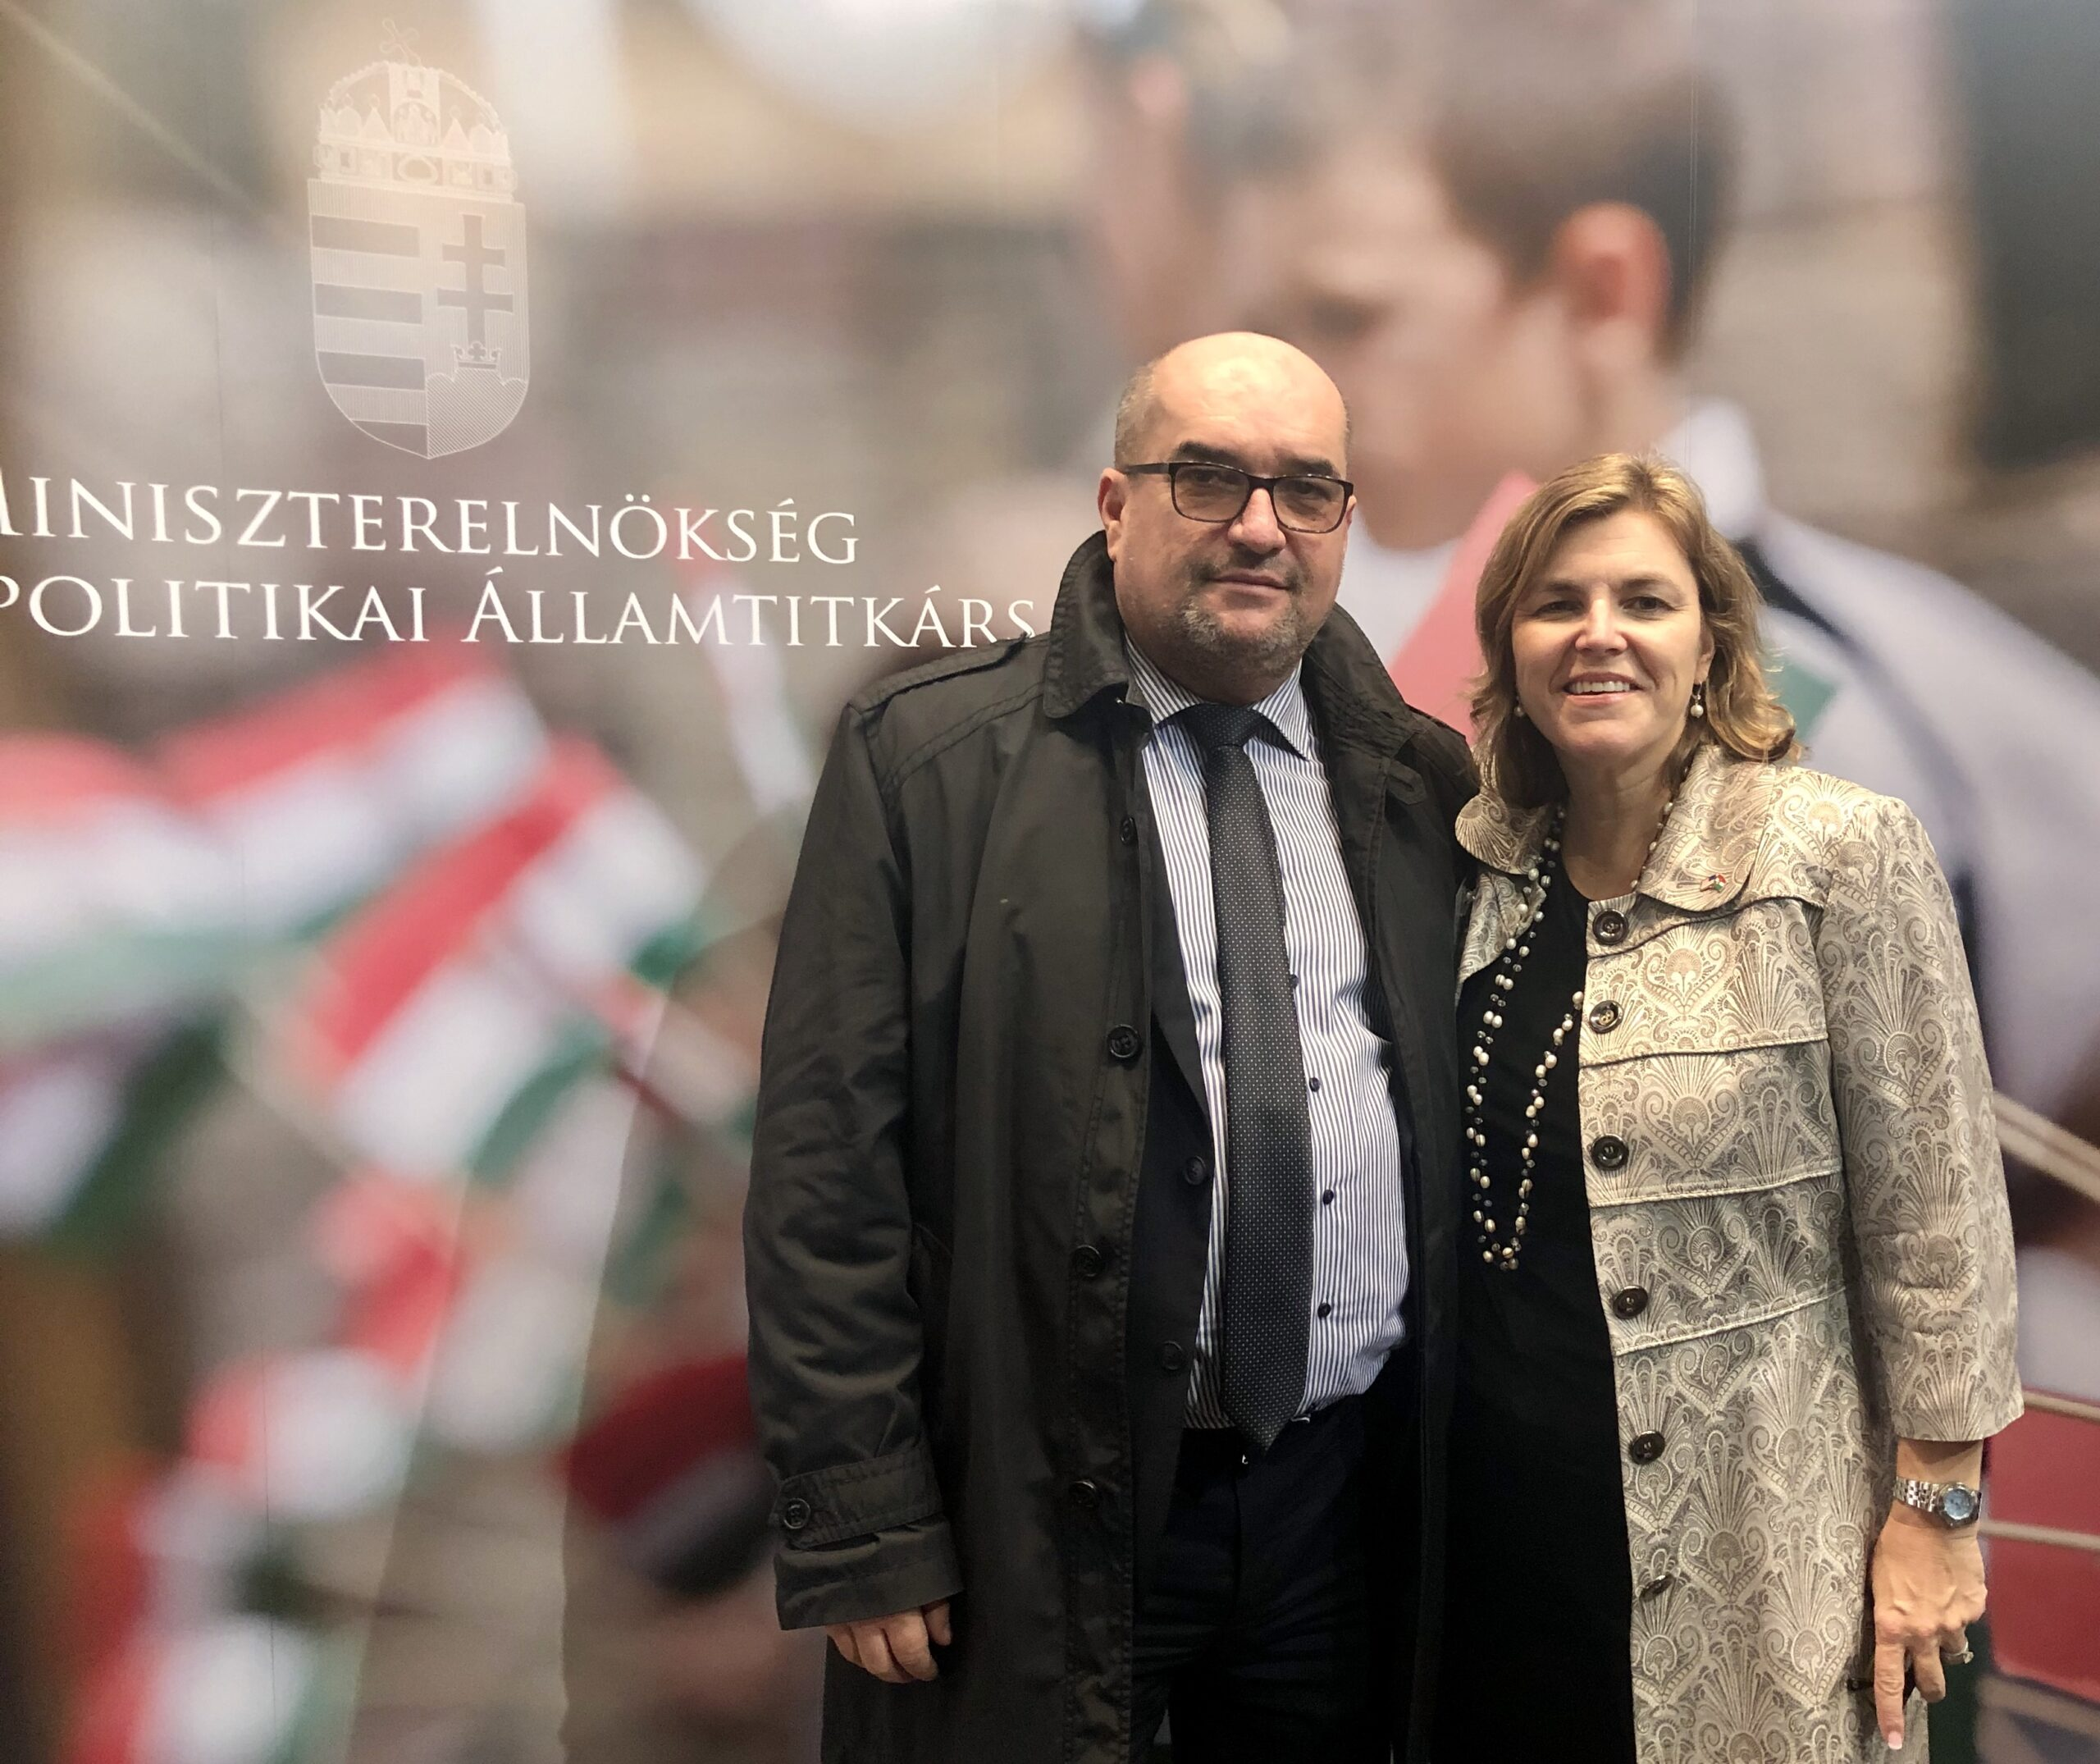 Coalition President Andrea Lauer Rice with Dr. László Brenzovics at the Hungarian Standing Conference (MÁÉRT) in November 2019